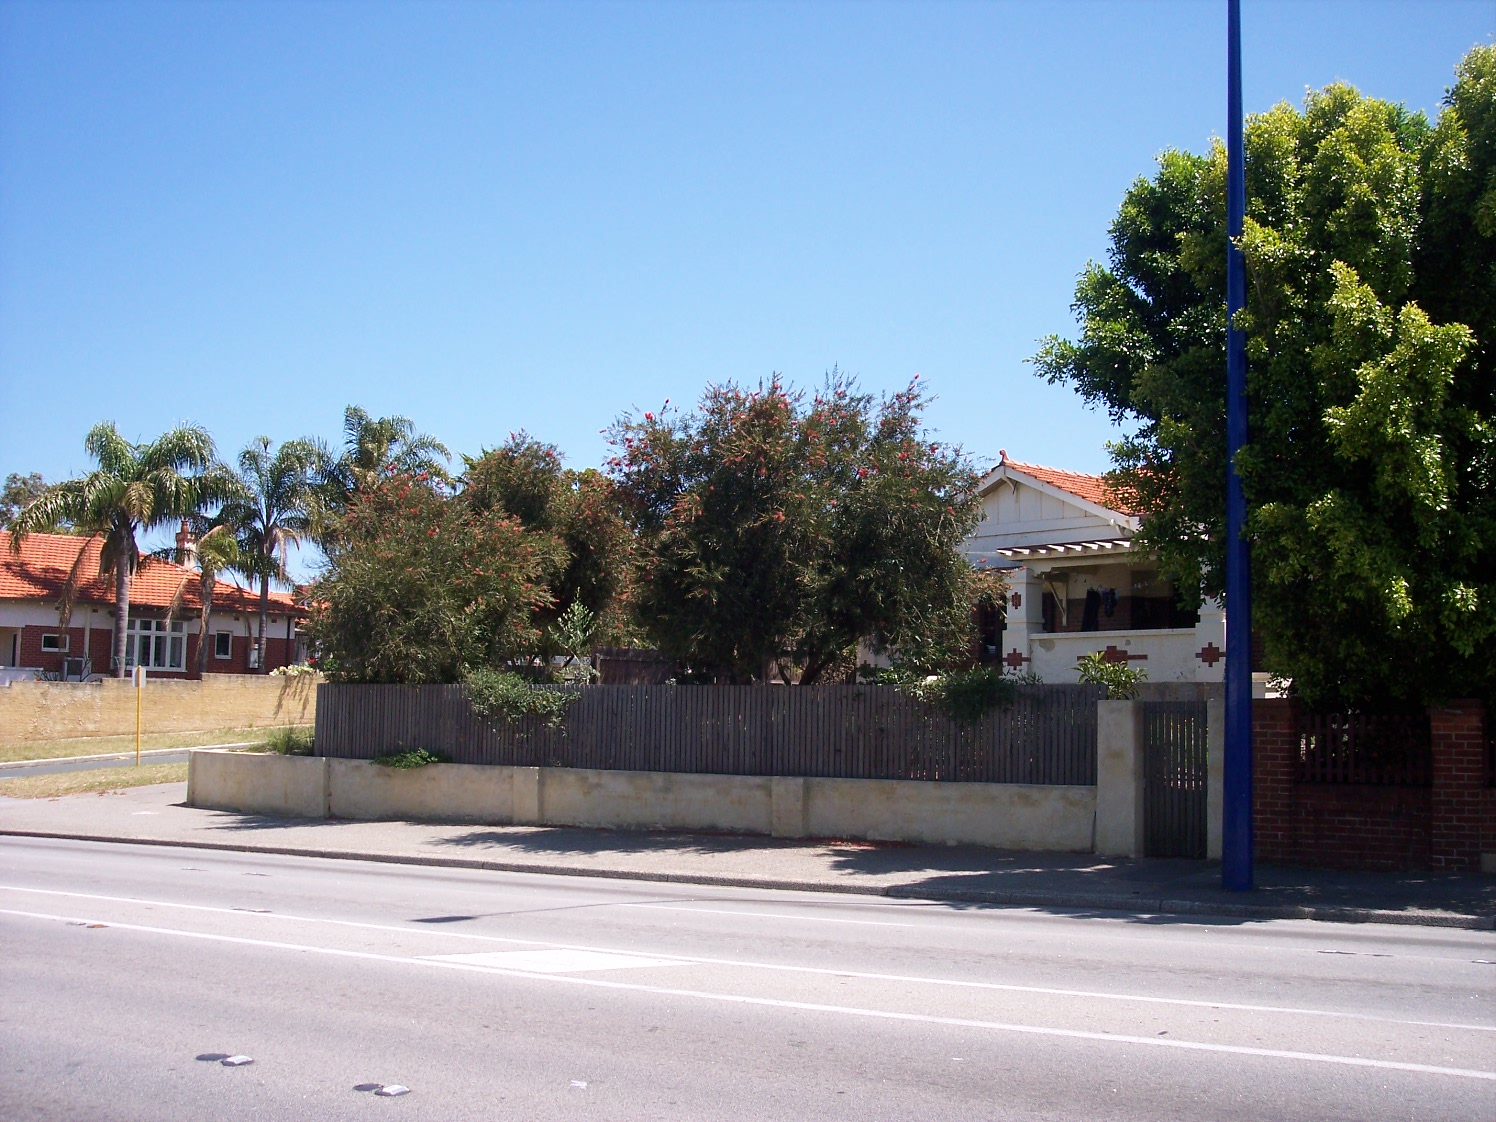 31-10-06 View NW 250 Canning Highway.jpg